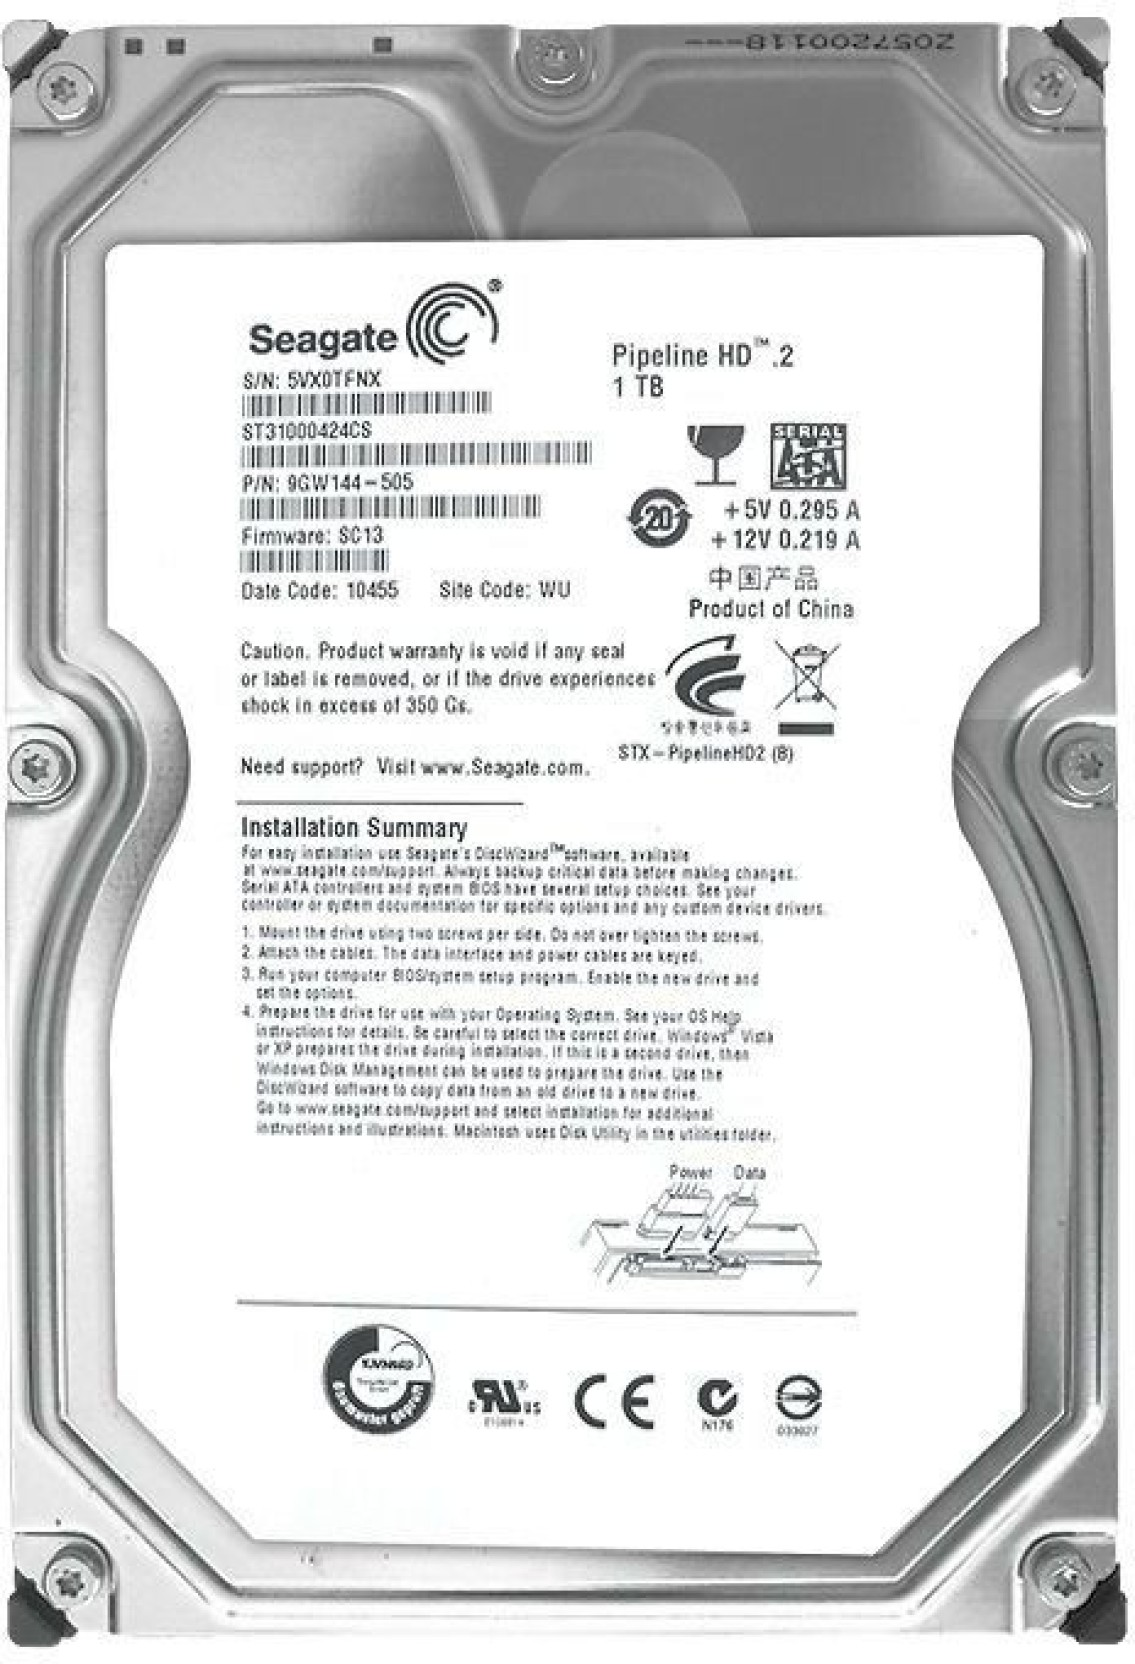 Seagate Pipeline 1 Tb Desktop Surveillance Systems Servers Harddisk 35 Inch Sata 500gb Slim Share